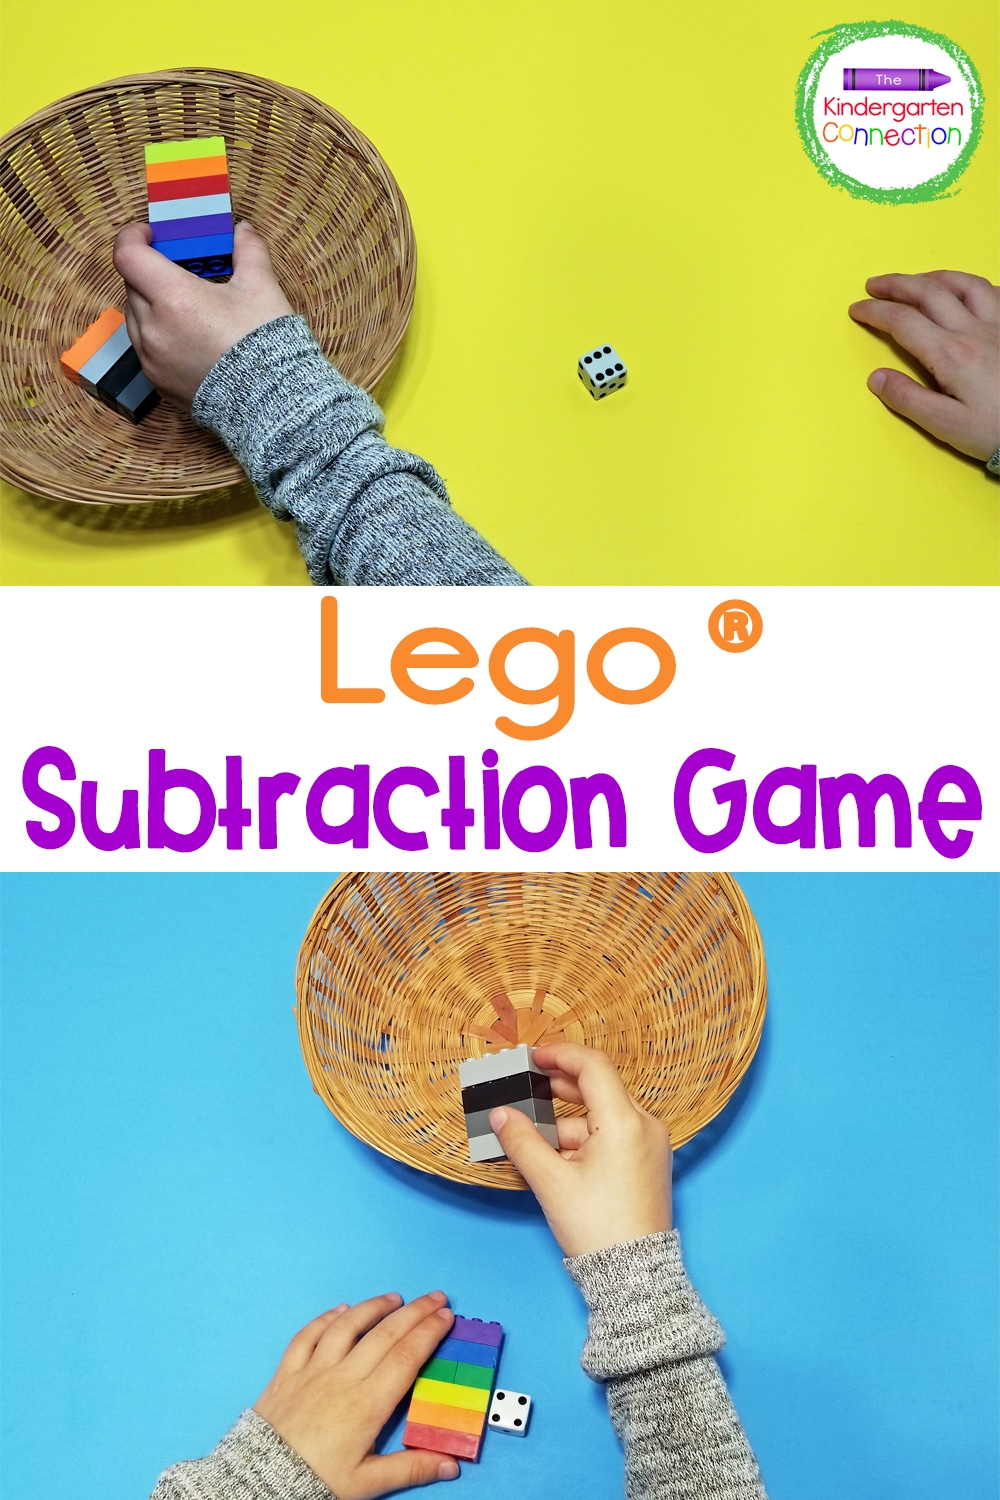 Turn LEGOs into fun learning manipulatives while working on subtraction with this creative, hands-on LEGO Subtraction Game for Kindergarten!